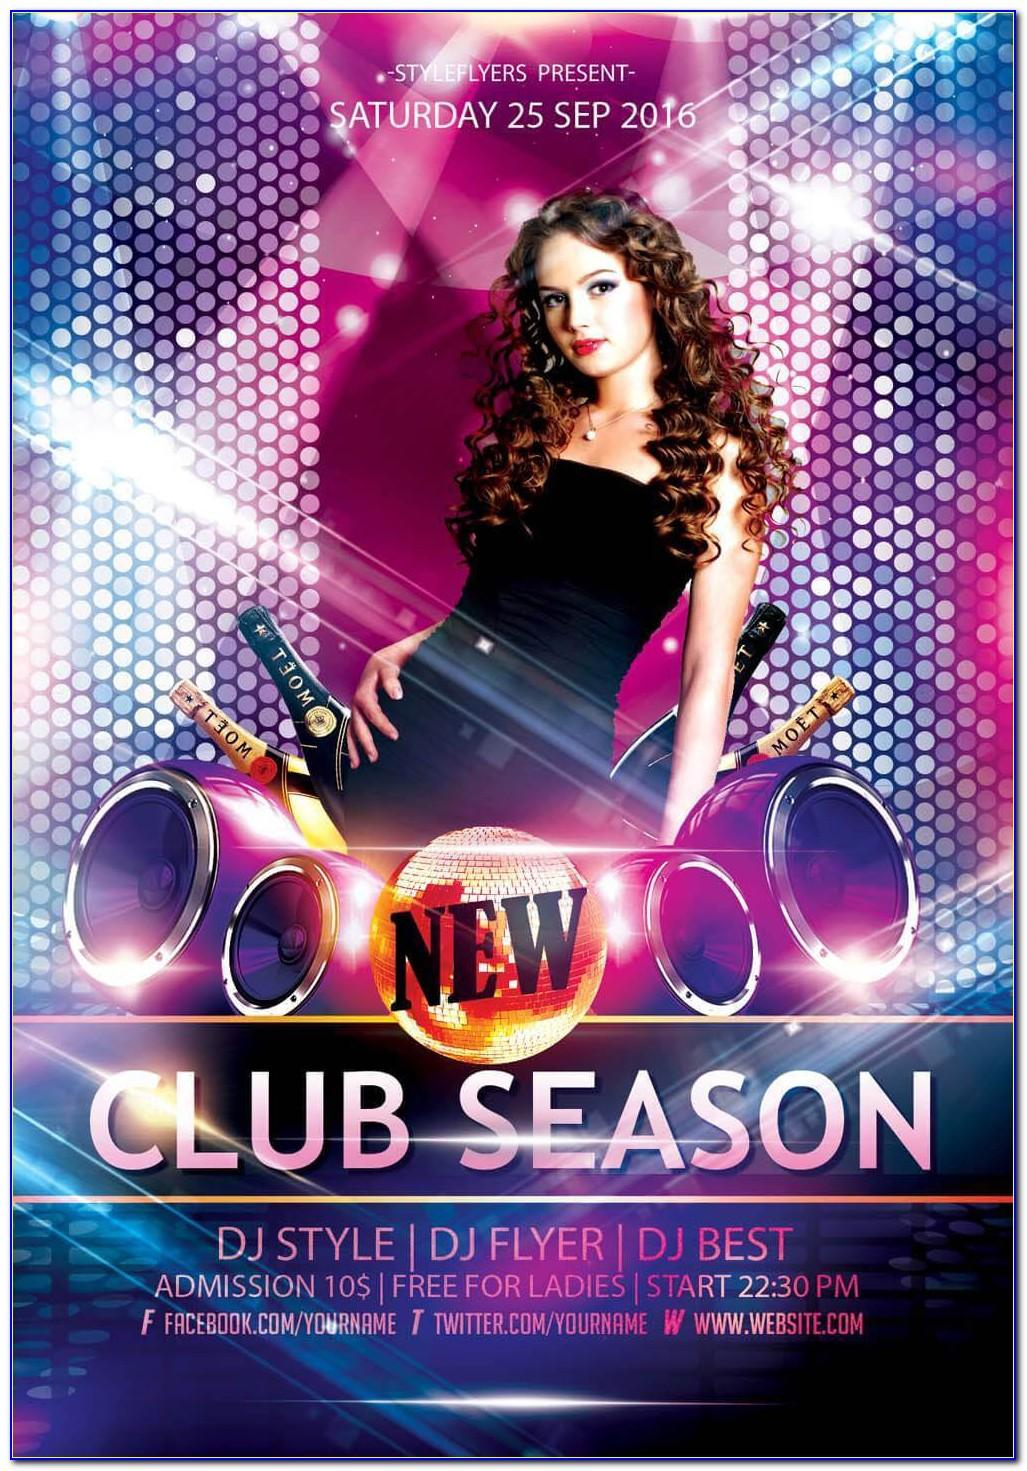 Nightclub Flyers Templates Free